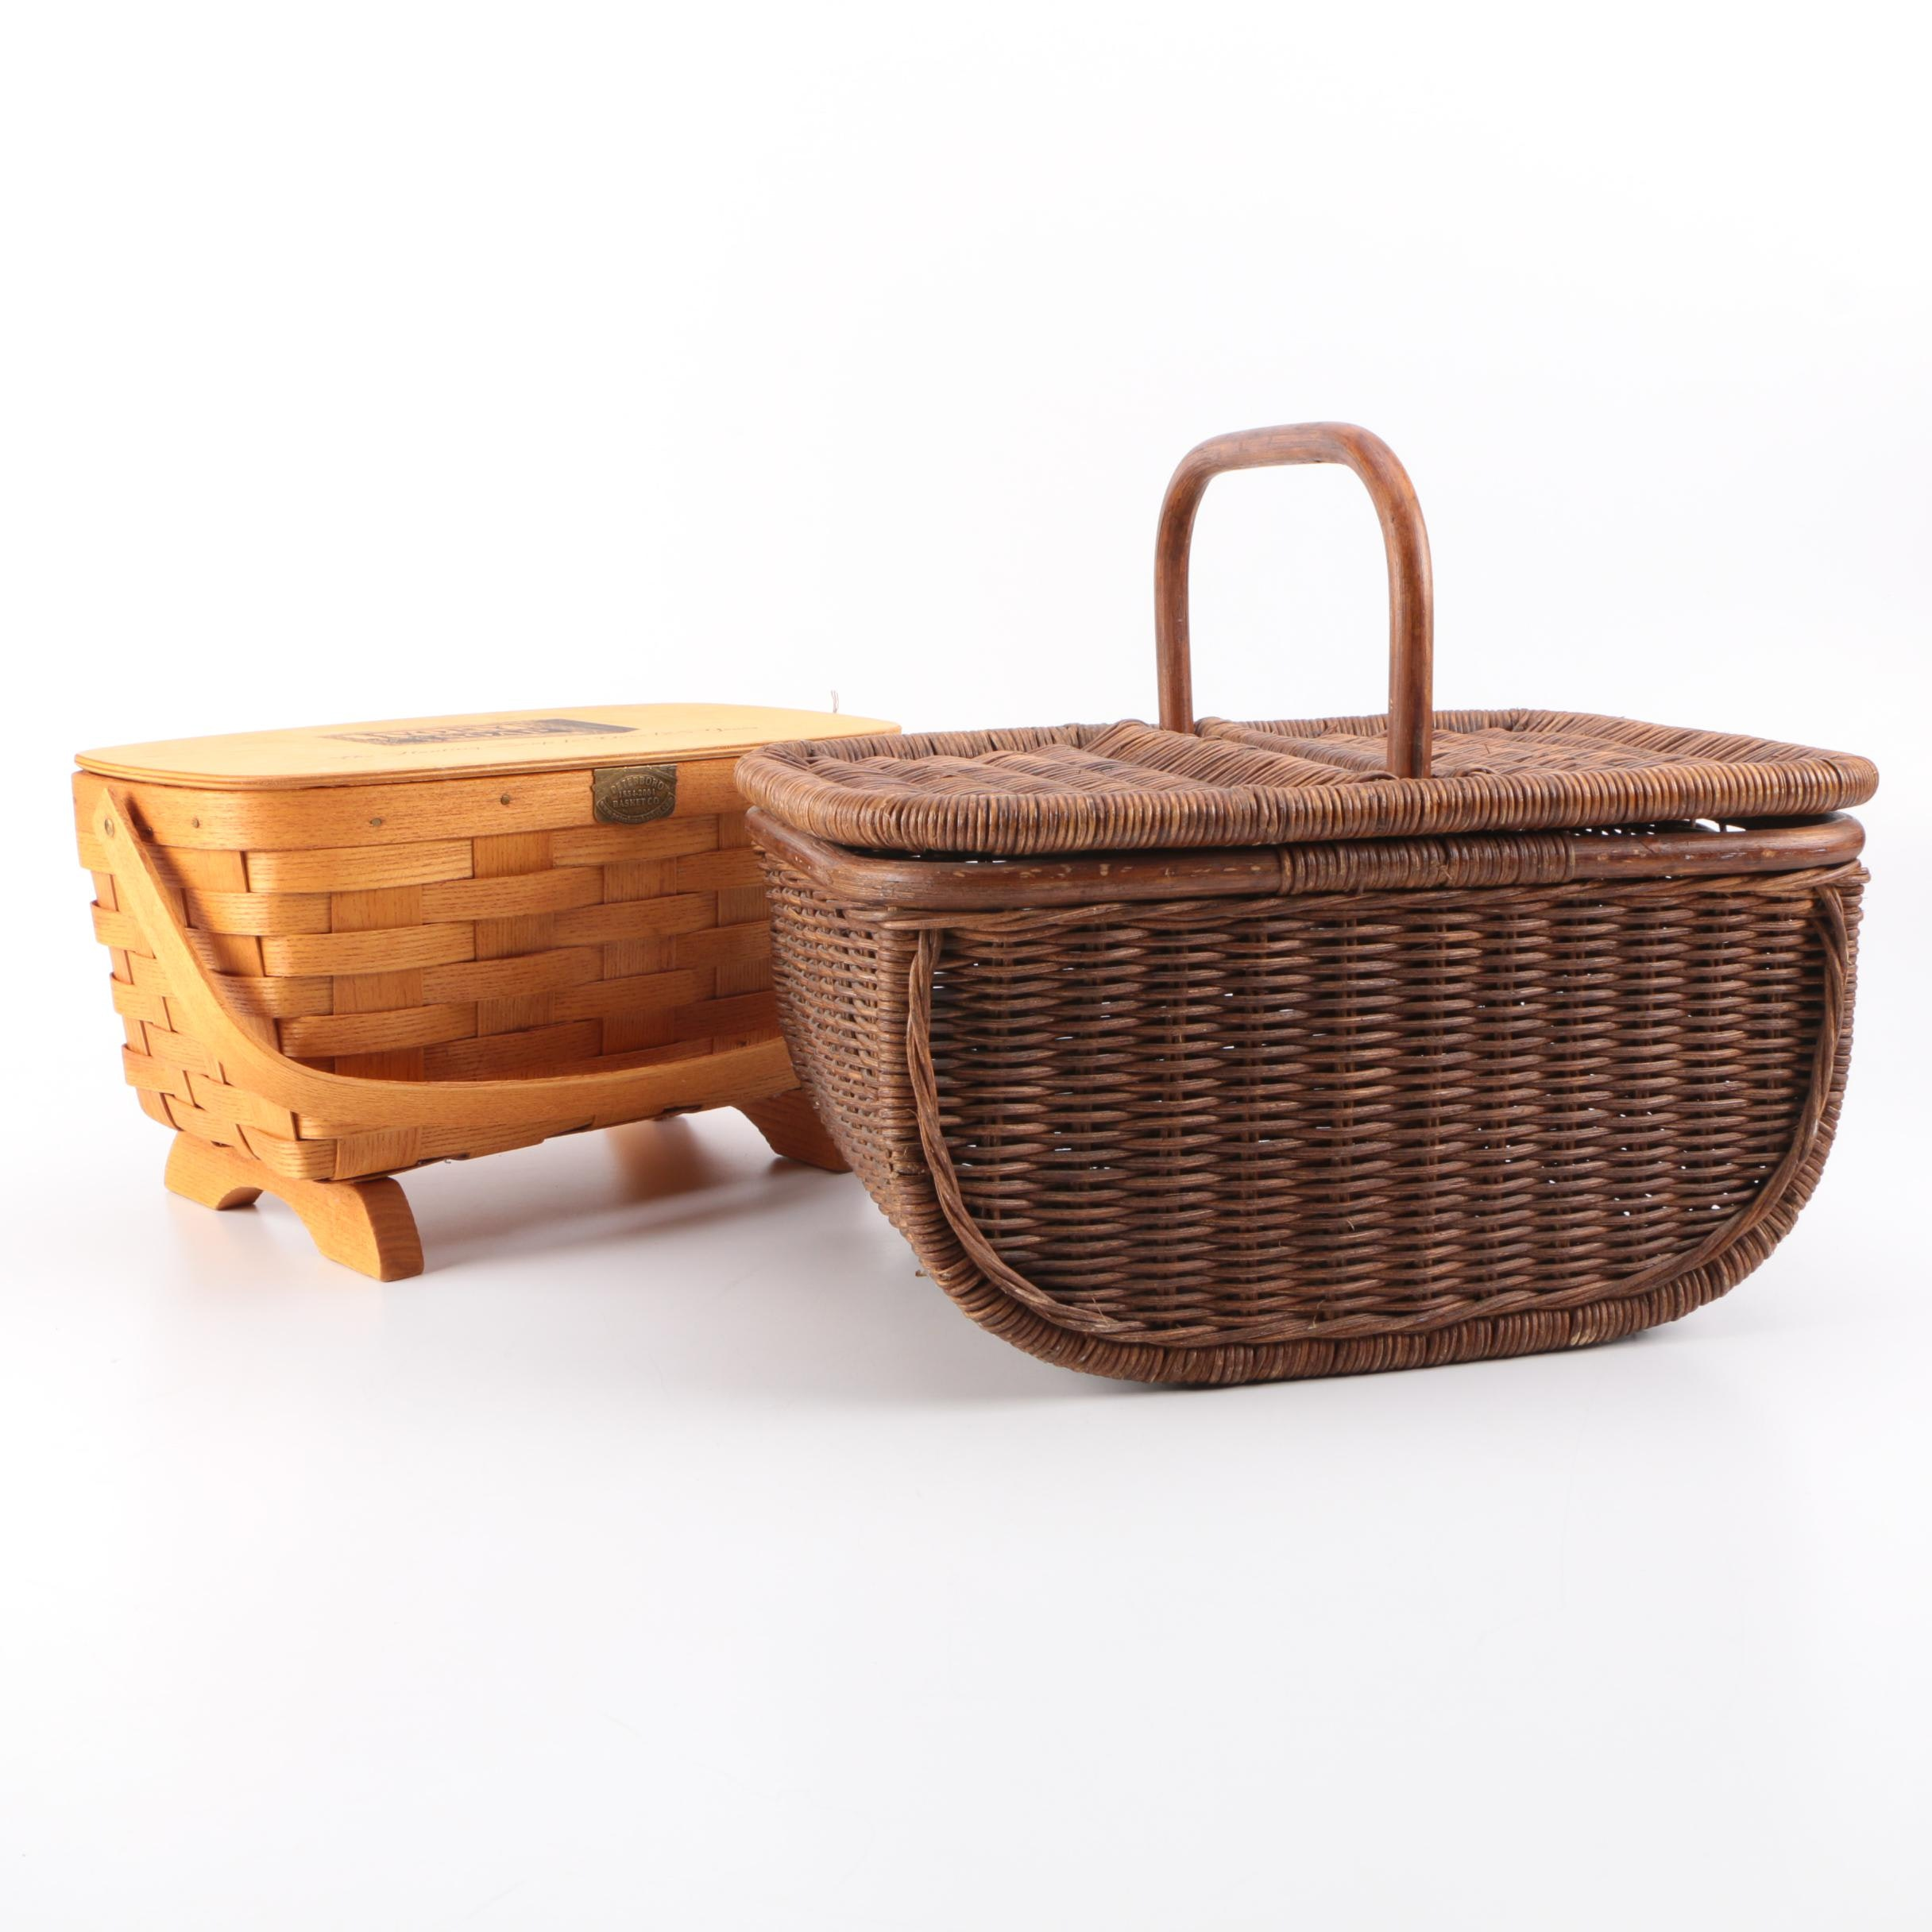 Pair Ivory Soap and P&G Labeled Woven Picnic Baskets